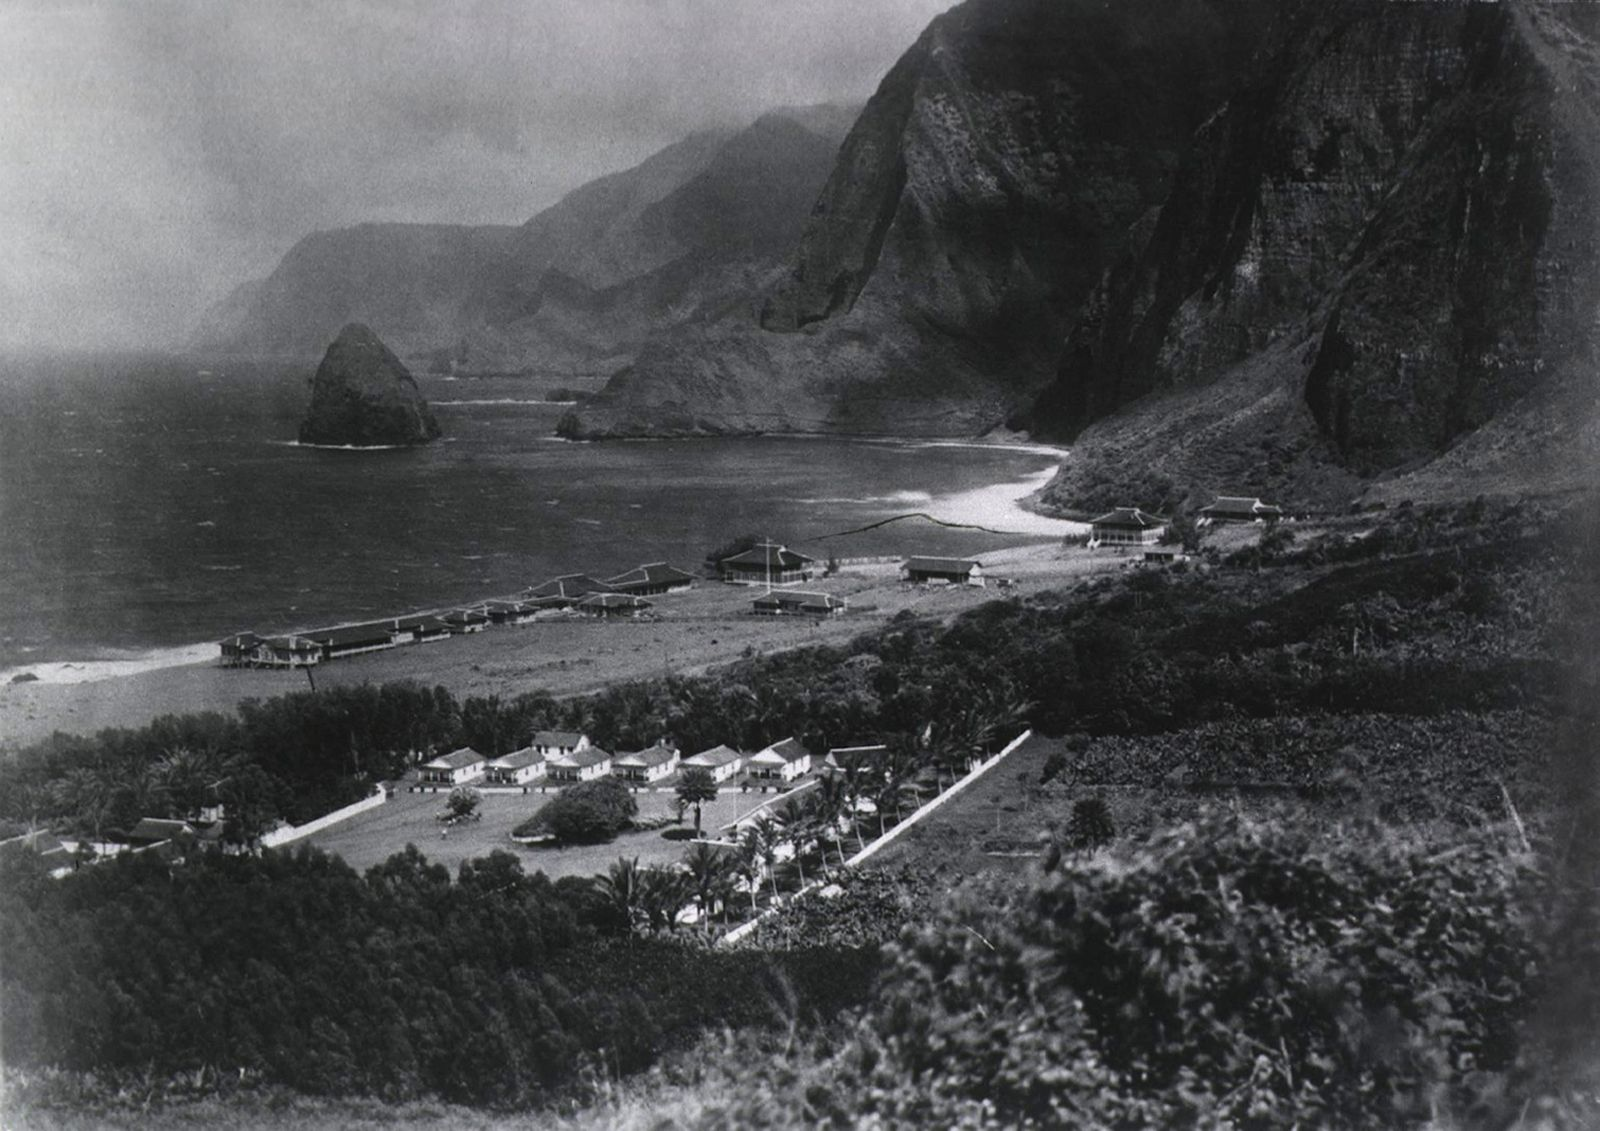 Leper Colony. The Kalawao Settlement, on the small Hawaiian island of Molokai, was established in 1866 as the first isolation settlement for Lepers. View of the Photo shows a circa 1900 view of the colony, showing buildings, ocean, and mountains. Kalawao i